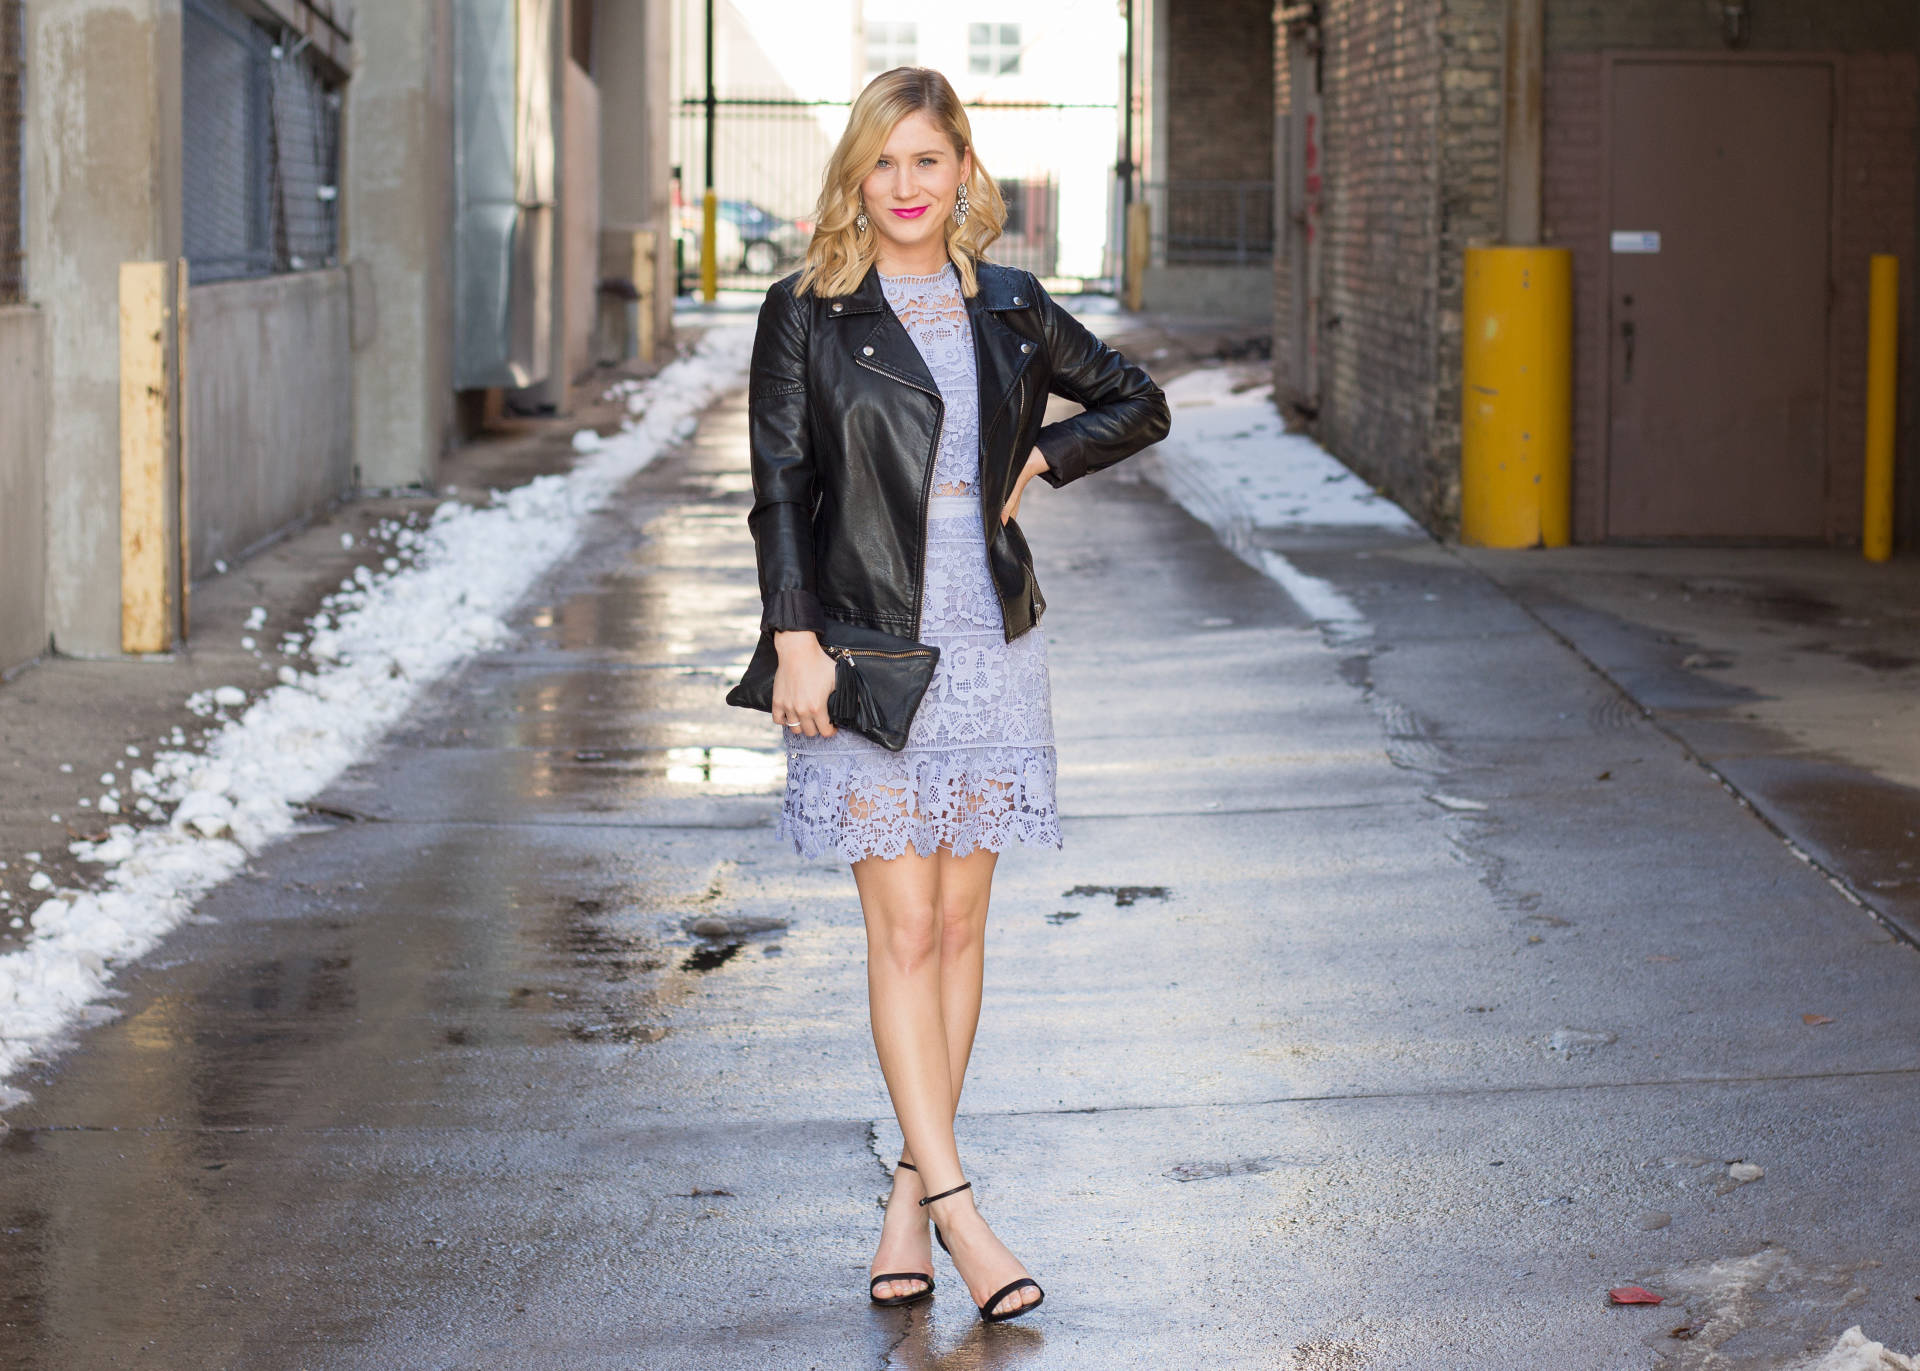 How to Wear Spring Dresses in the Cold | www.goldhattedlover.com